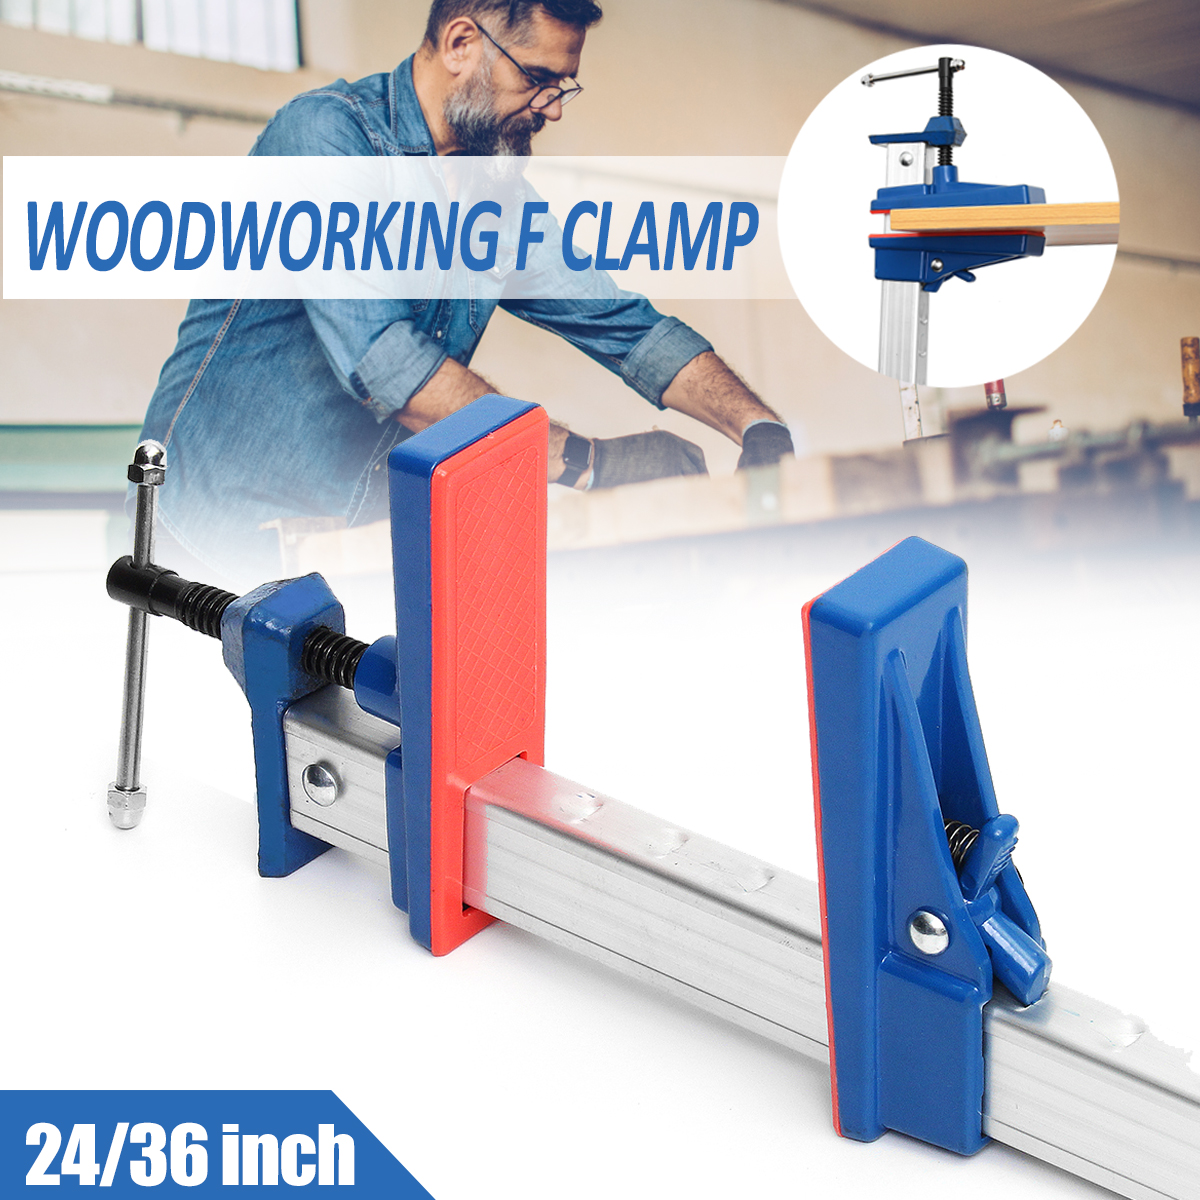 24/36 inch Heavy Duty F Clamps for Woodworking Clamp DIY T Bar Wood Clamps Quick Release Clip Wooden Board Holder Grip Hand Tool струбцина irwin quick grip xp ohbc 450 mm 18 inch